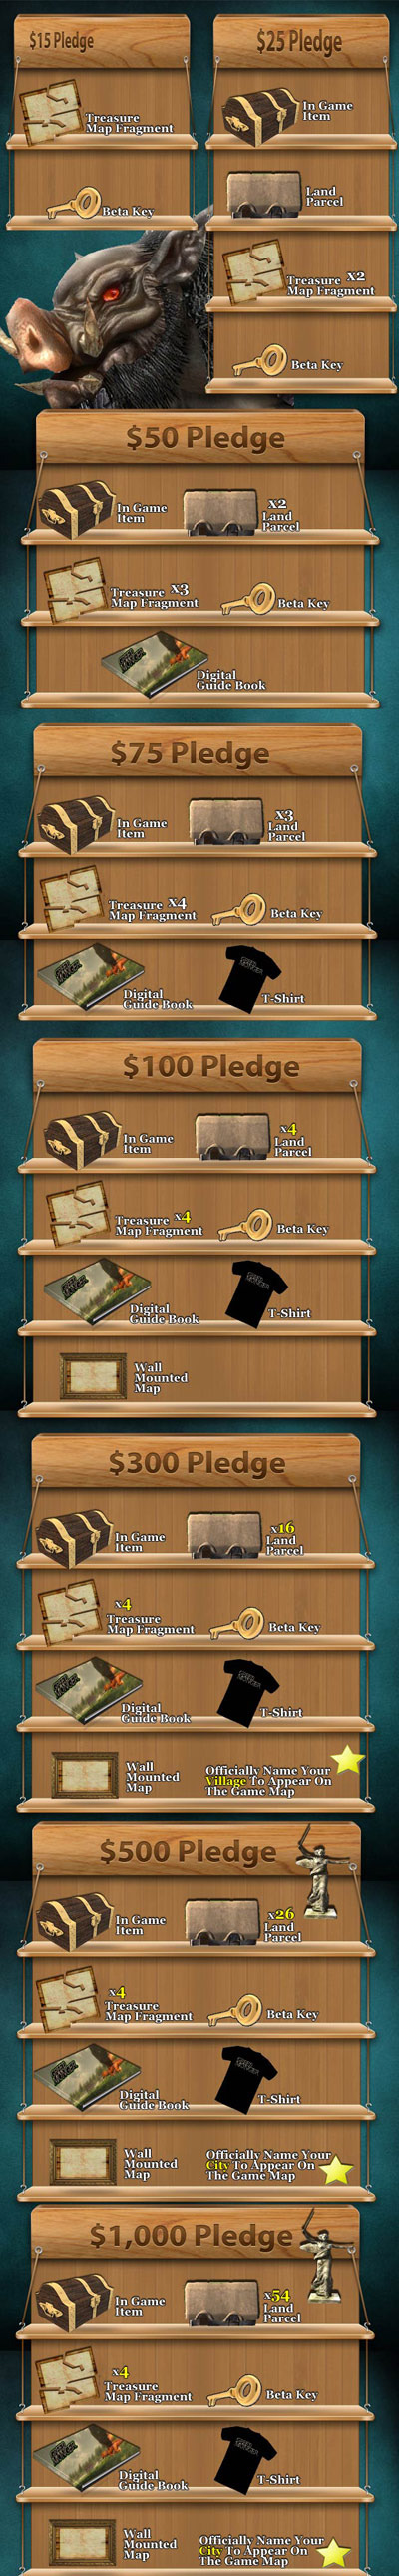 Pledge Rewards